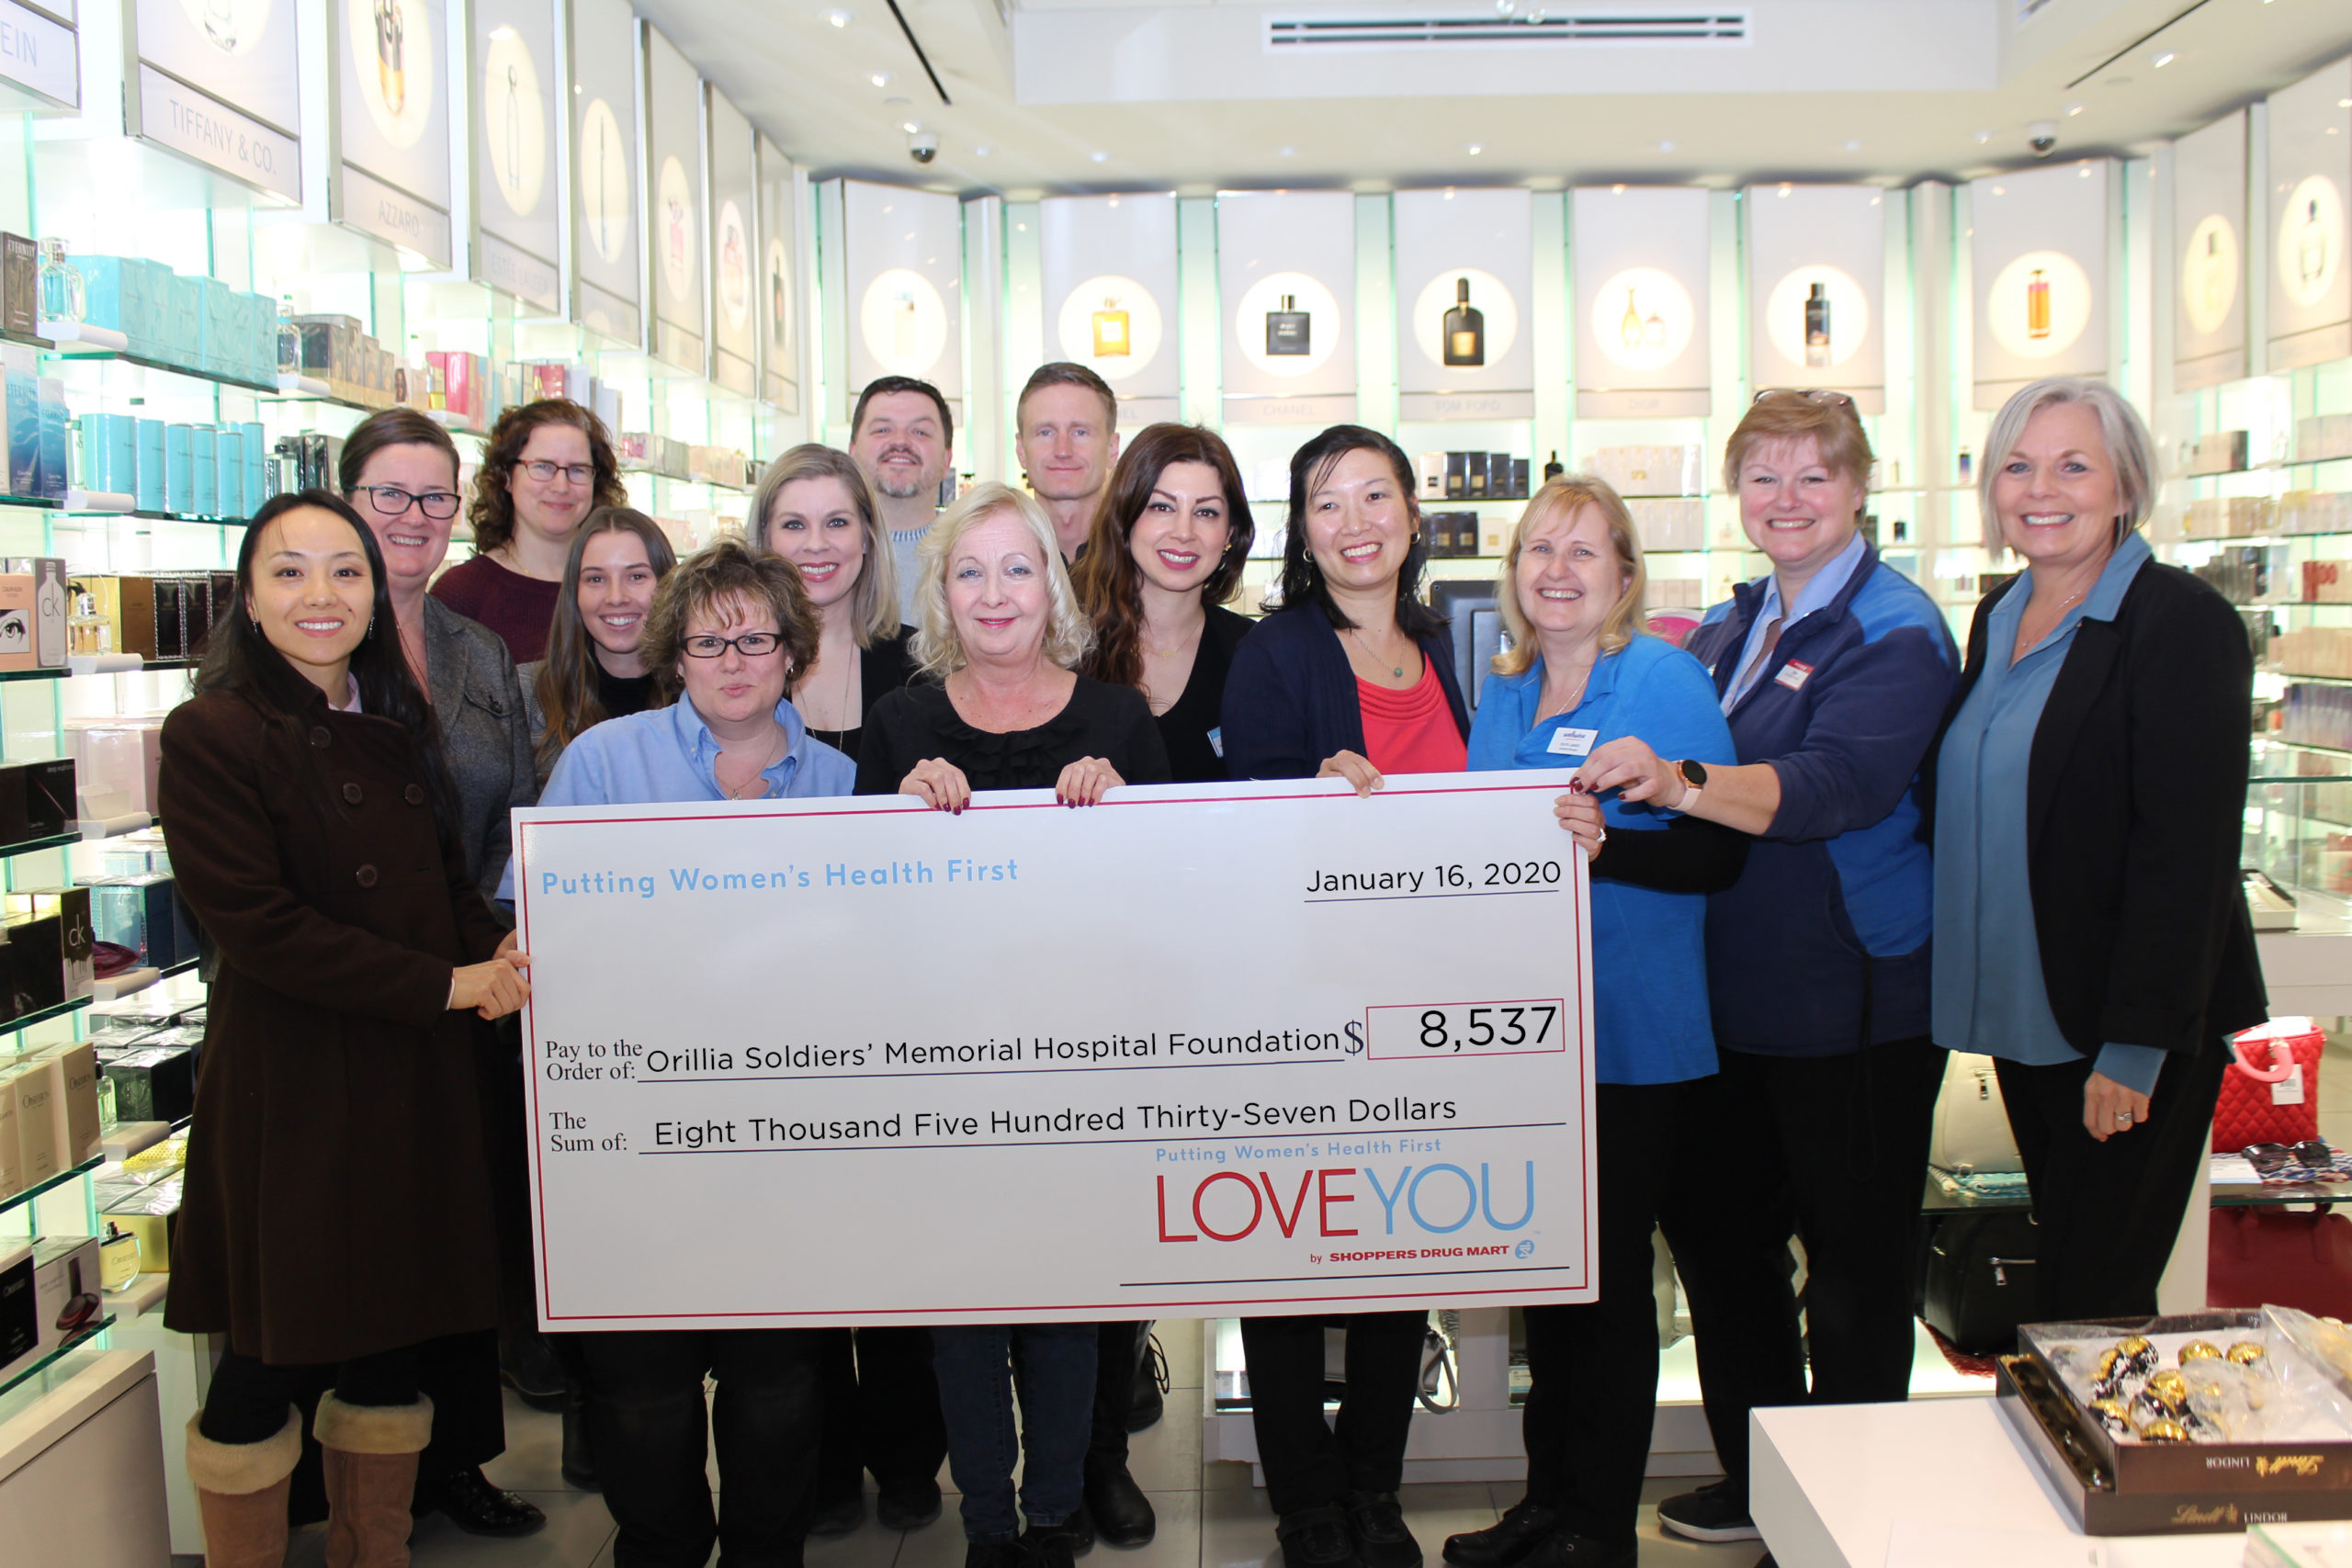 Shoppers Drug Mart owners and staff present a cheque for $8,537 to representatives of the Orillia Soldiers' Memorial Hospital Foundation to support Women's Health Programs at the Hospital.